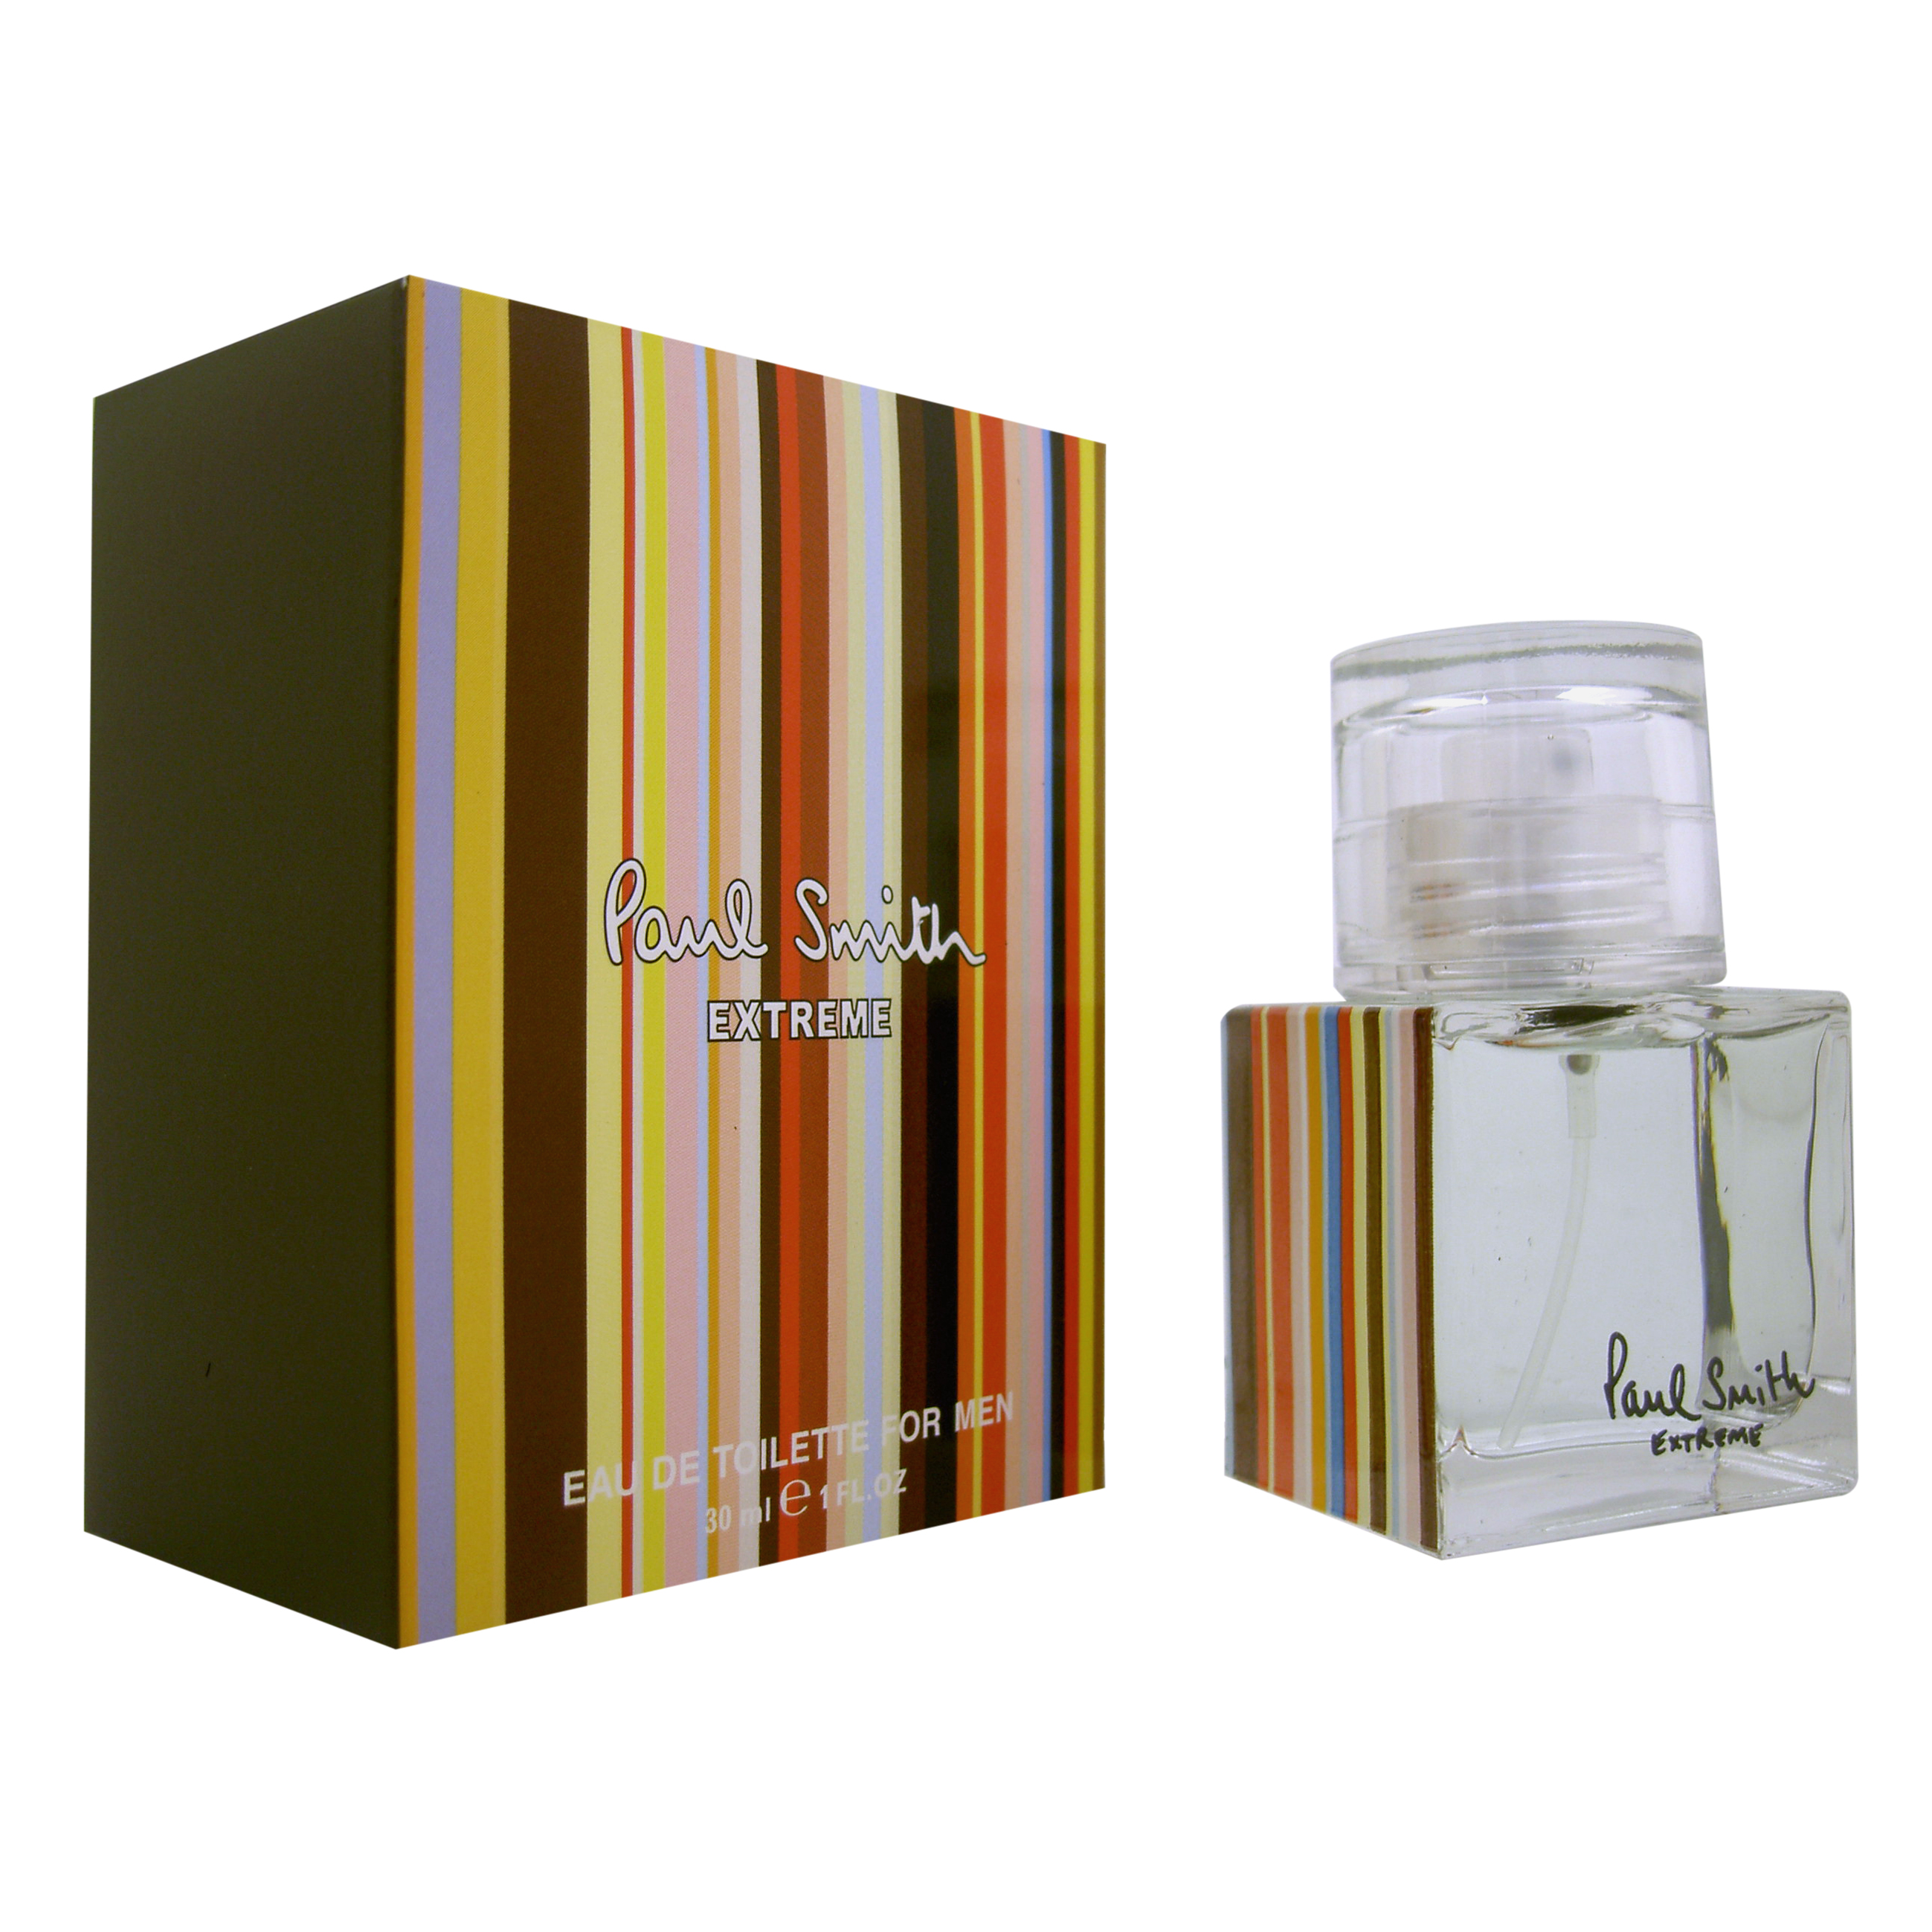 Paul Smith Extreme Eau de Toilette